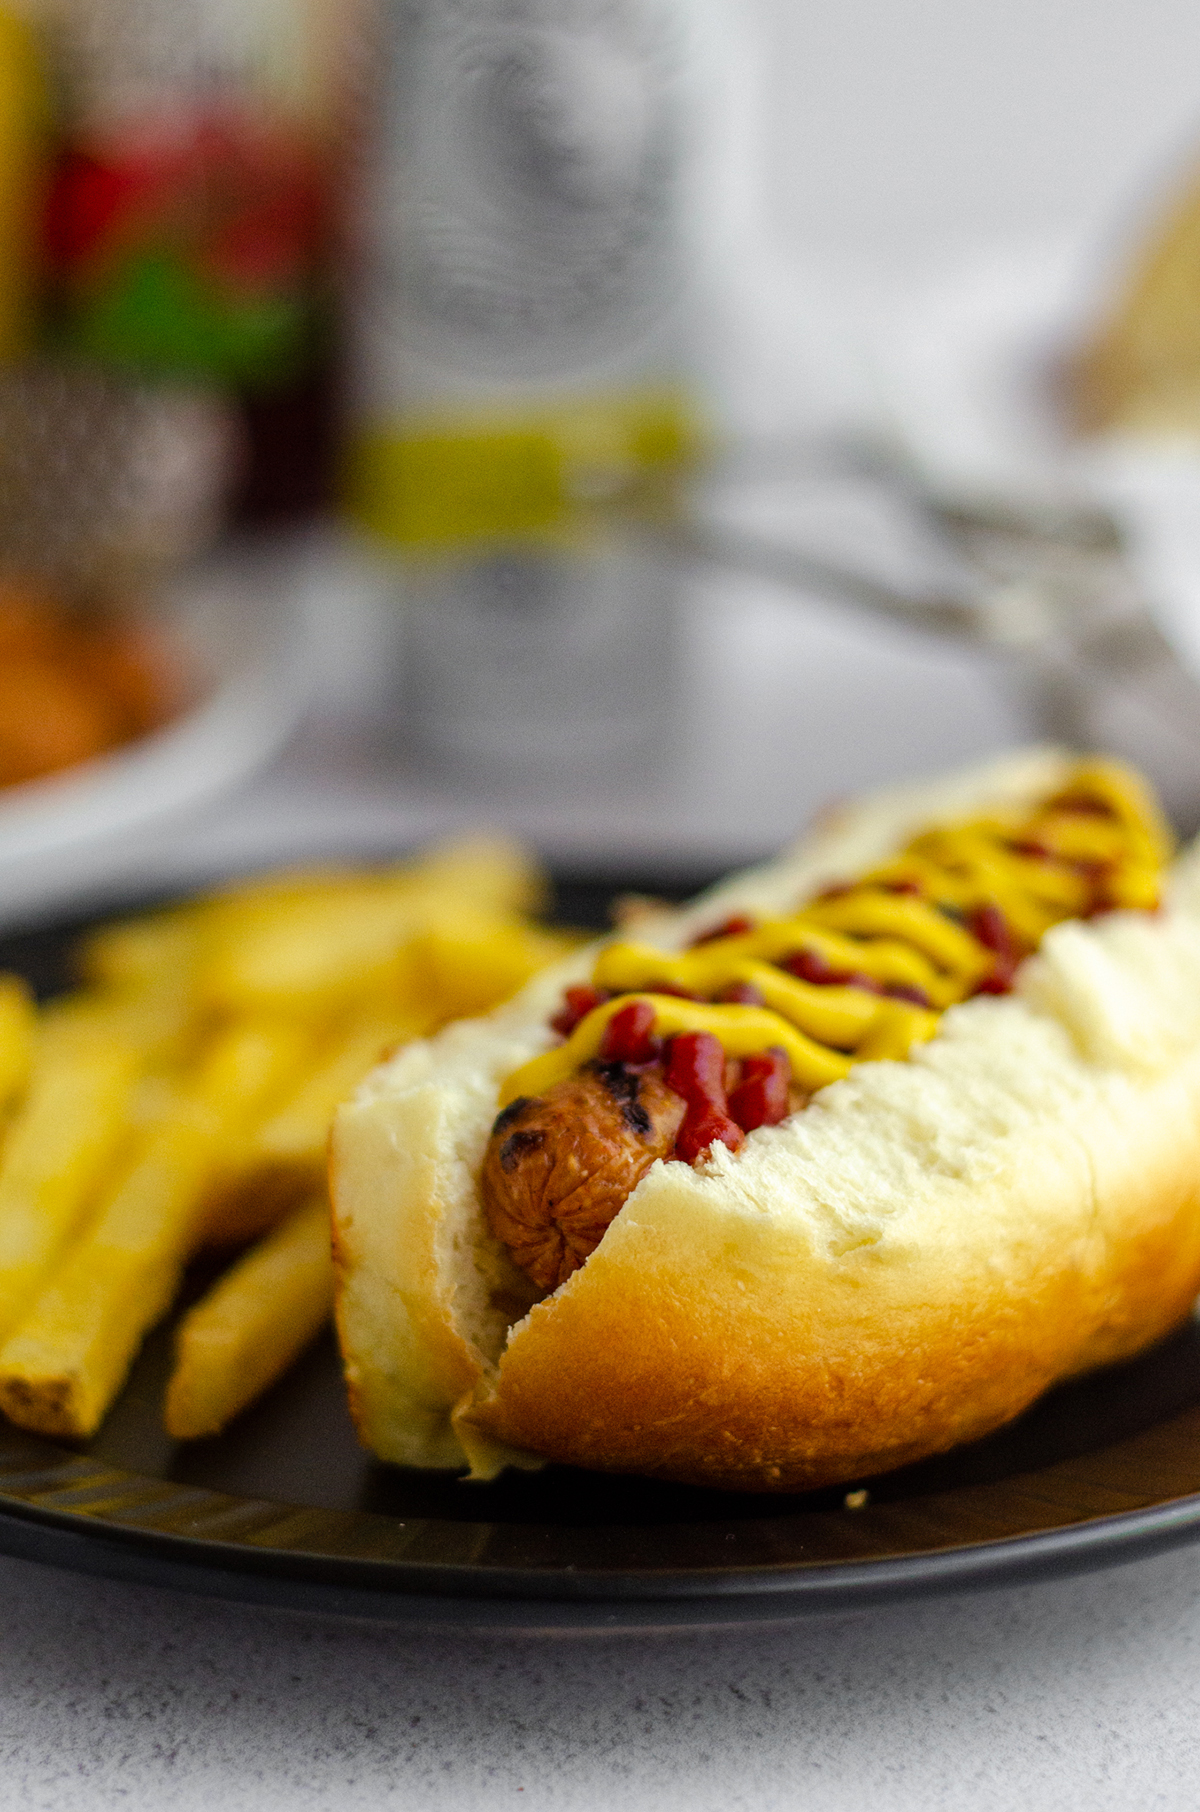 hot dog in a homemade hot dog bun with a squirts of ketchup and mustard sitting on a black plate with french fries